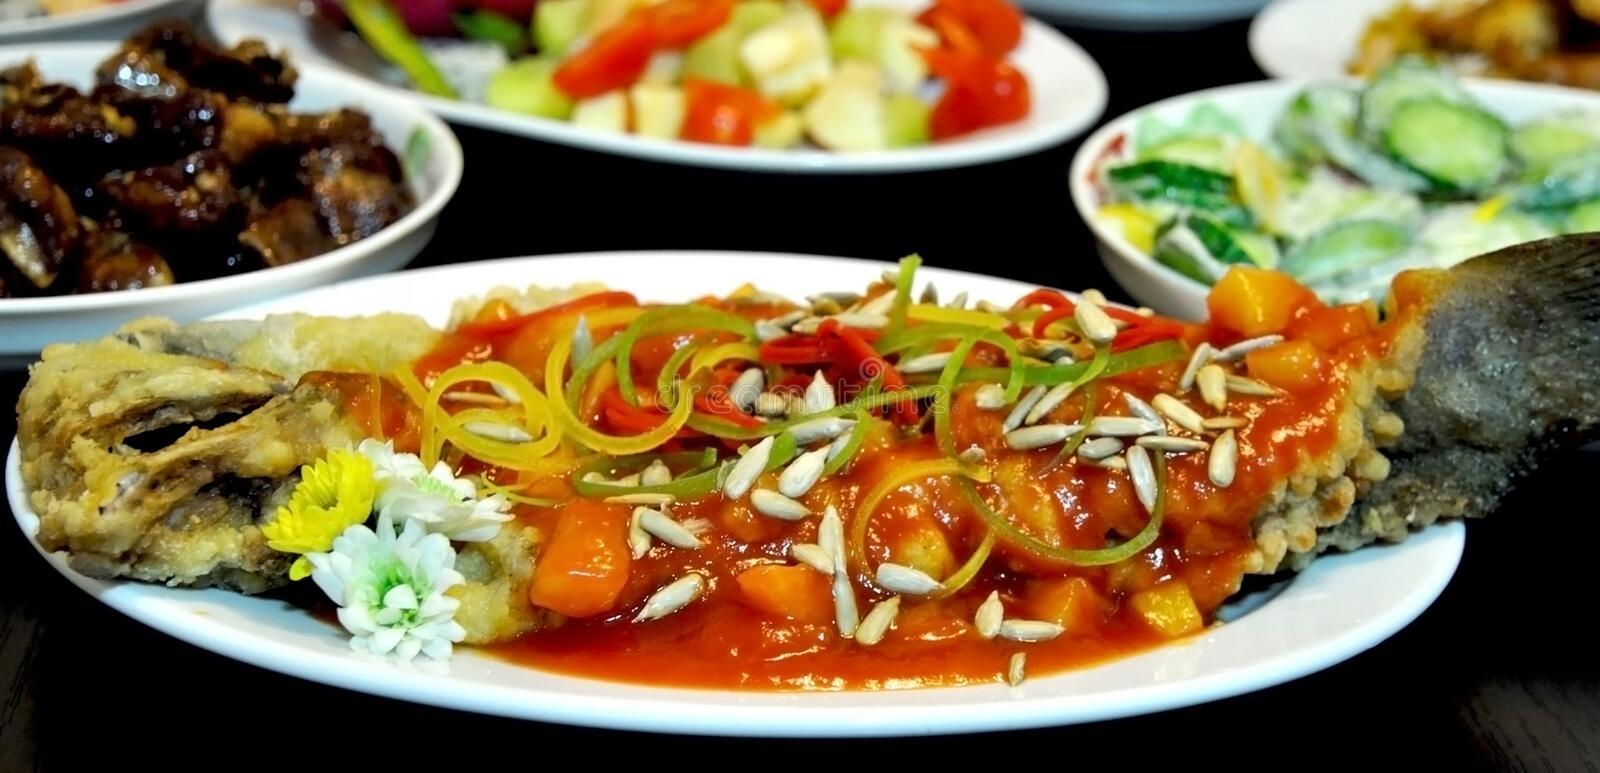 Chinese fish dishes royalty free stock photo